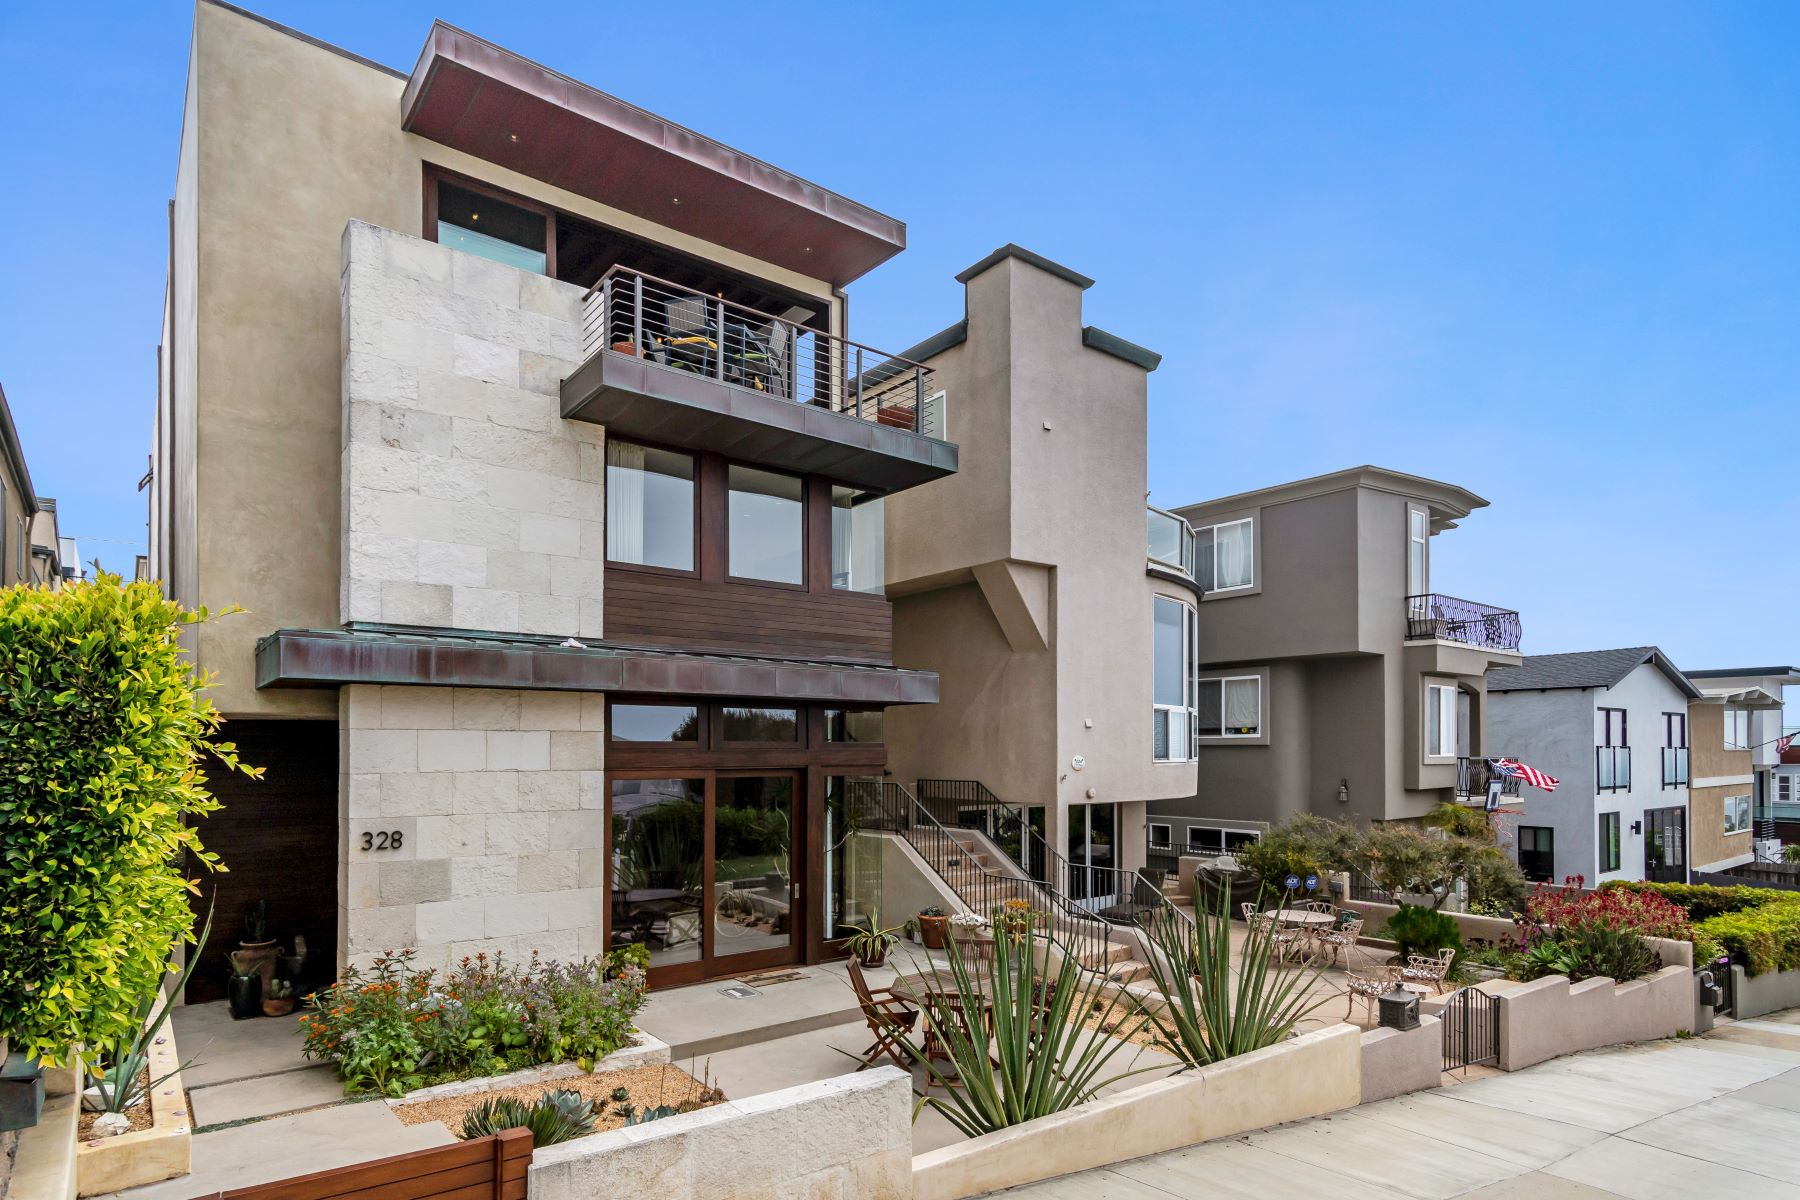 Single Family Homes for Active at 328 19th Street, Manhattan Beach, CA 90266 328 19th Street Manhattan Beach, California 90266 United States